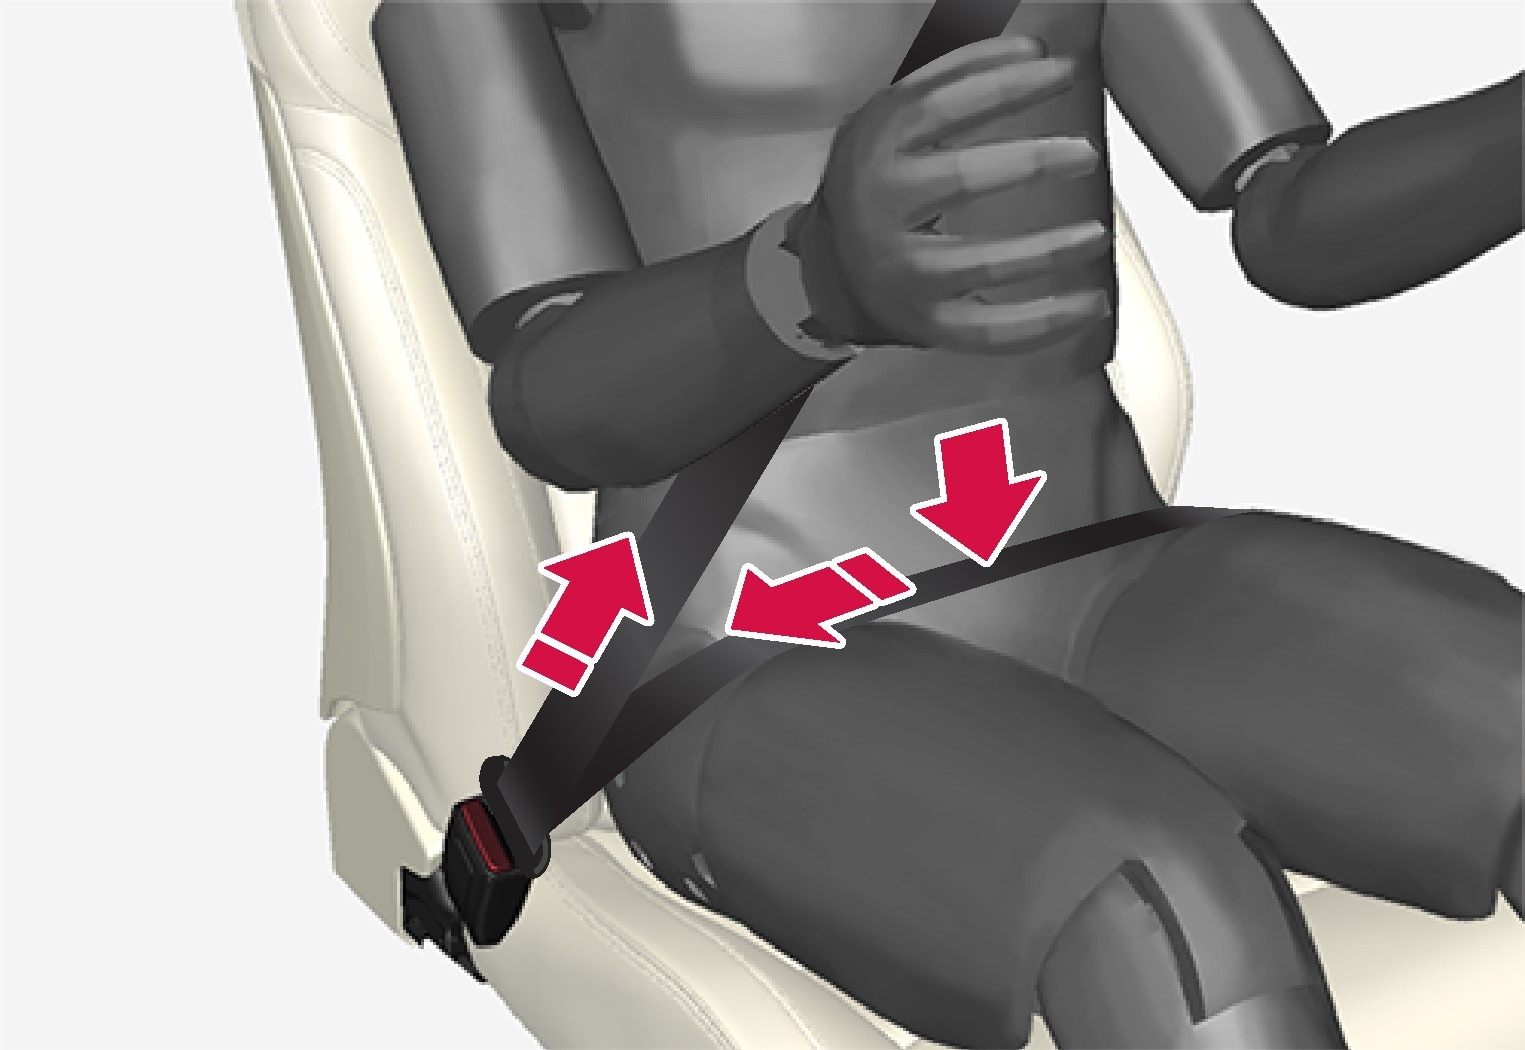 The hip strap must be positioned low down (not over the abdomen).